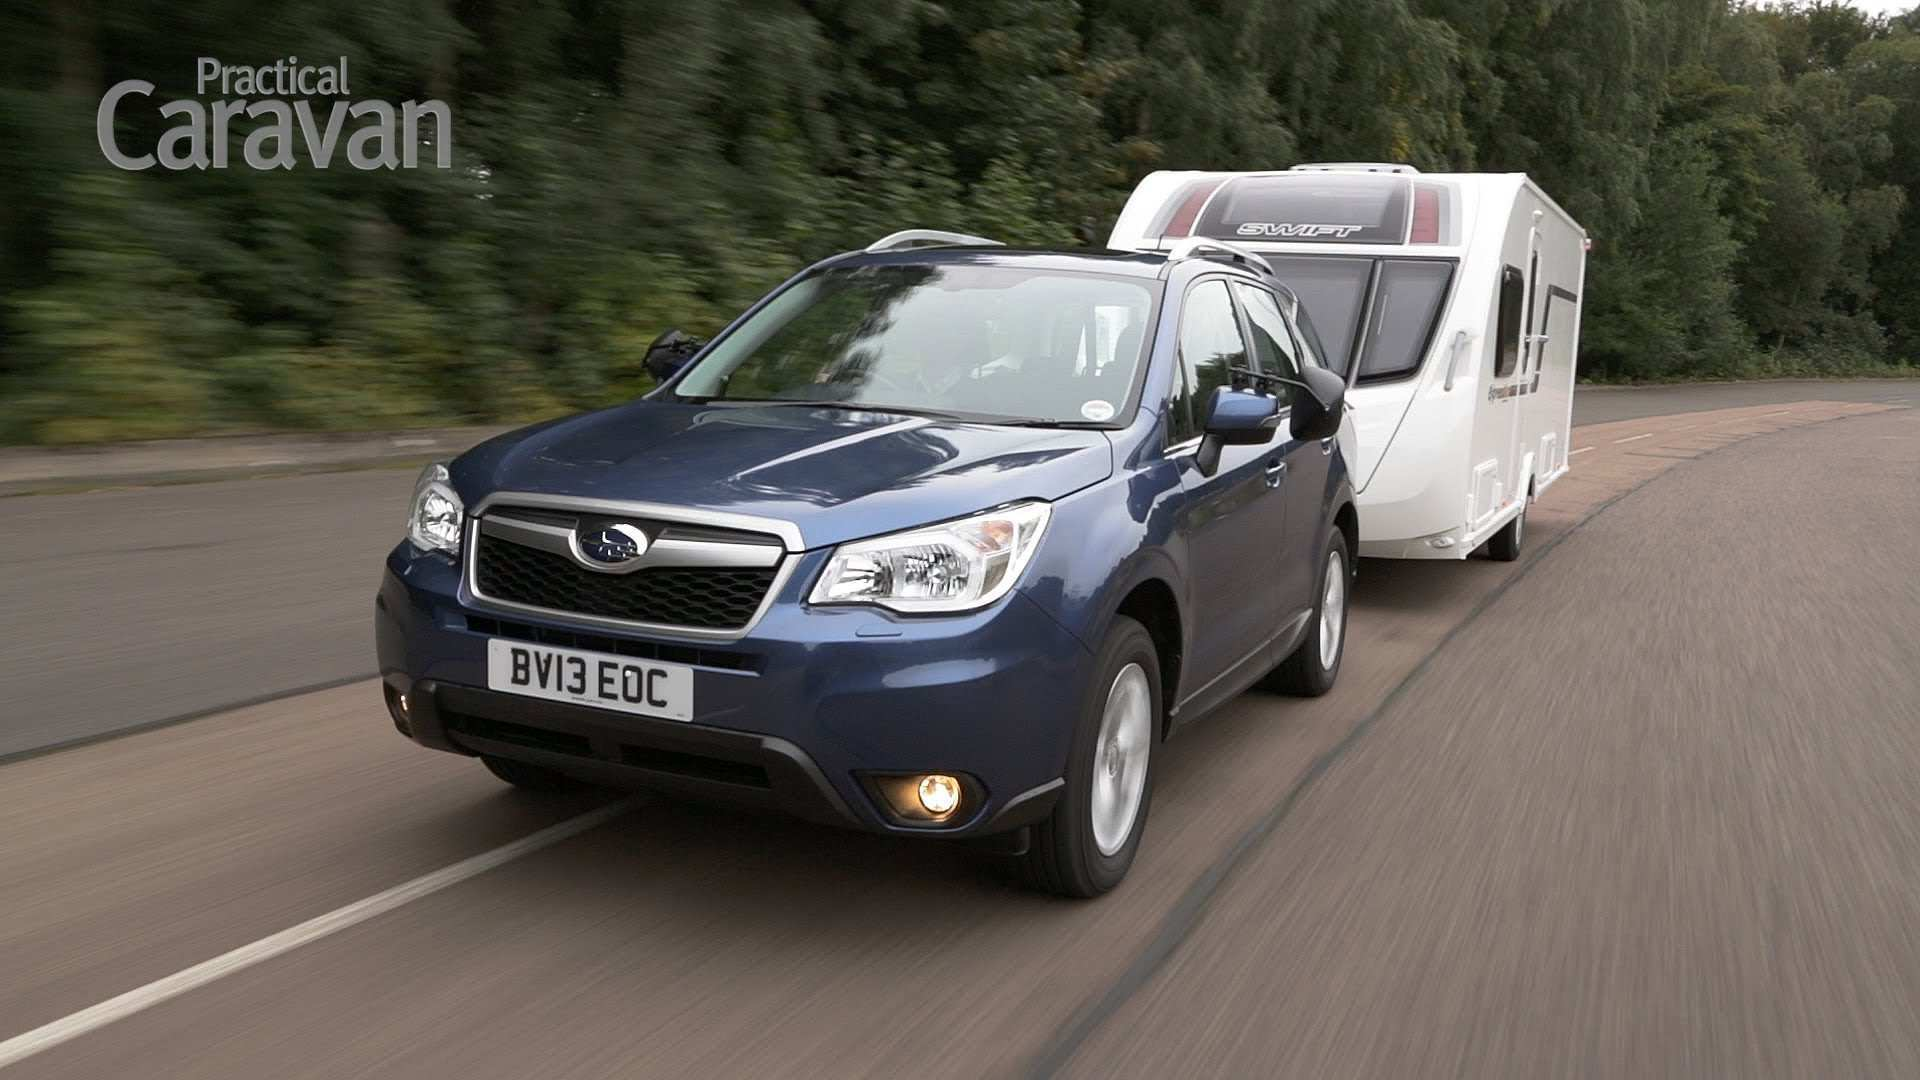 65 Gallery of 2020 Subaru Forester Towing Capacity Pricing with 2020 Subaru Forester Towing Capacity